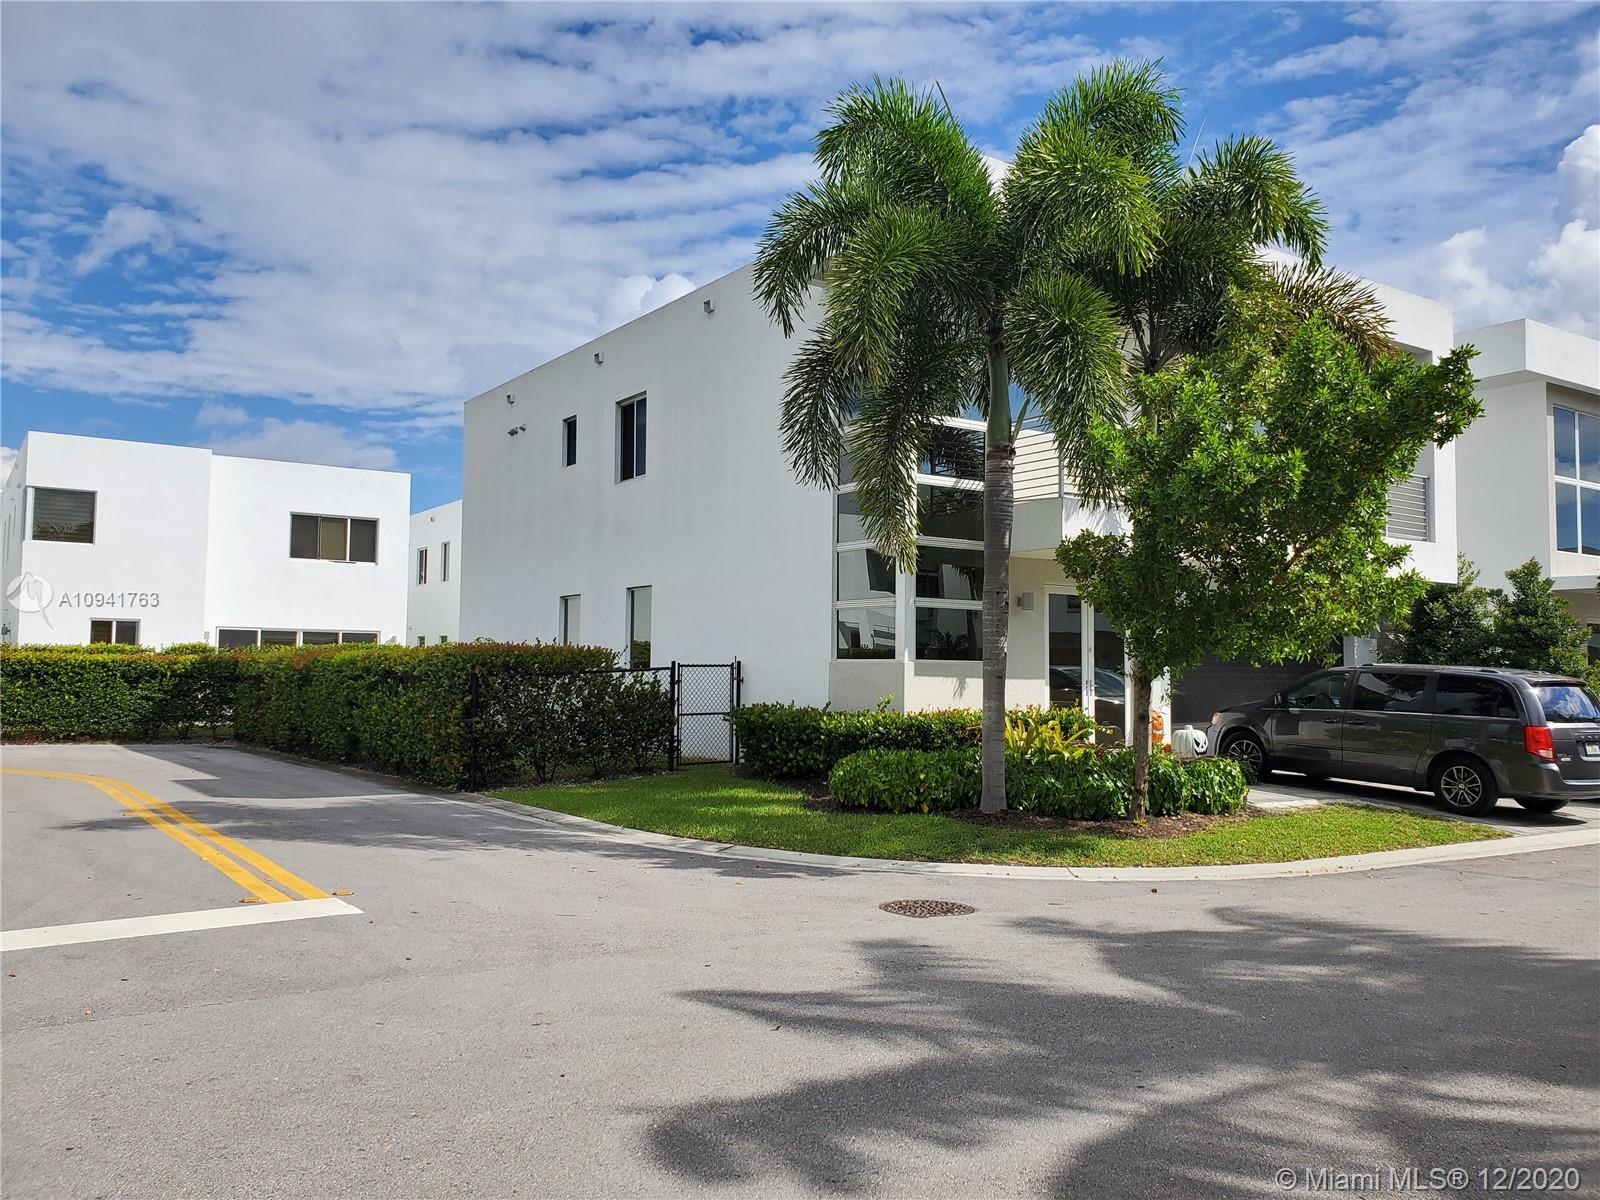 9749 NW 74th Ter #9749 For Sale A10941763, FL